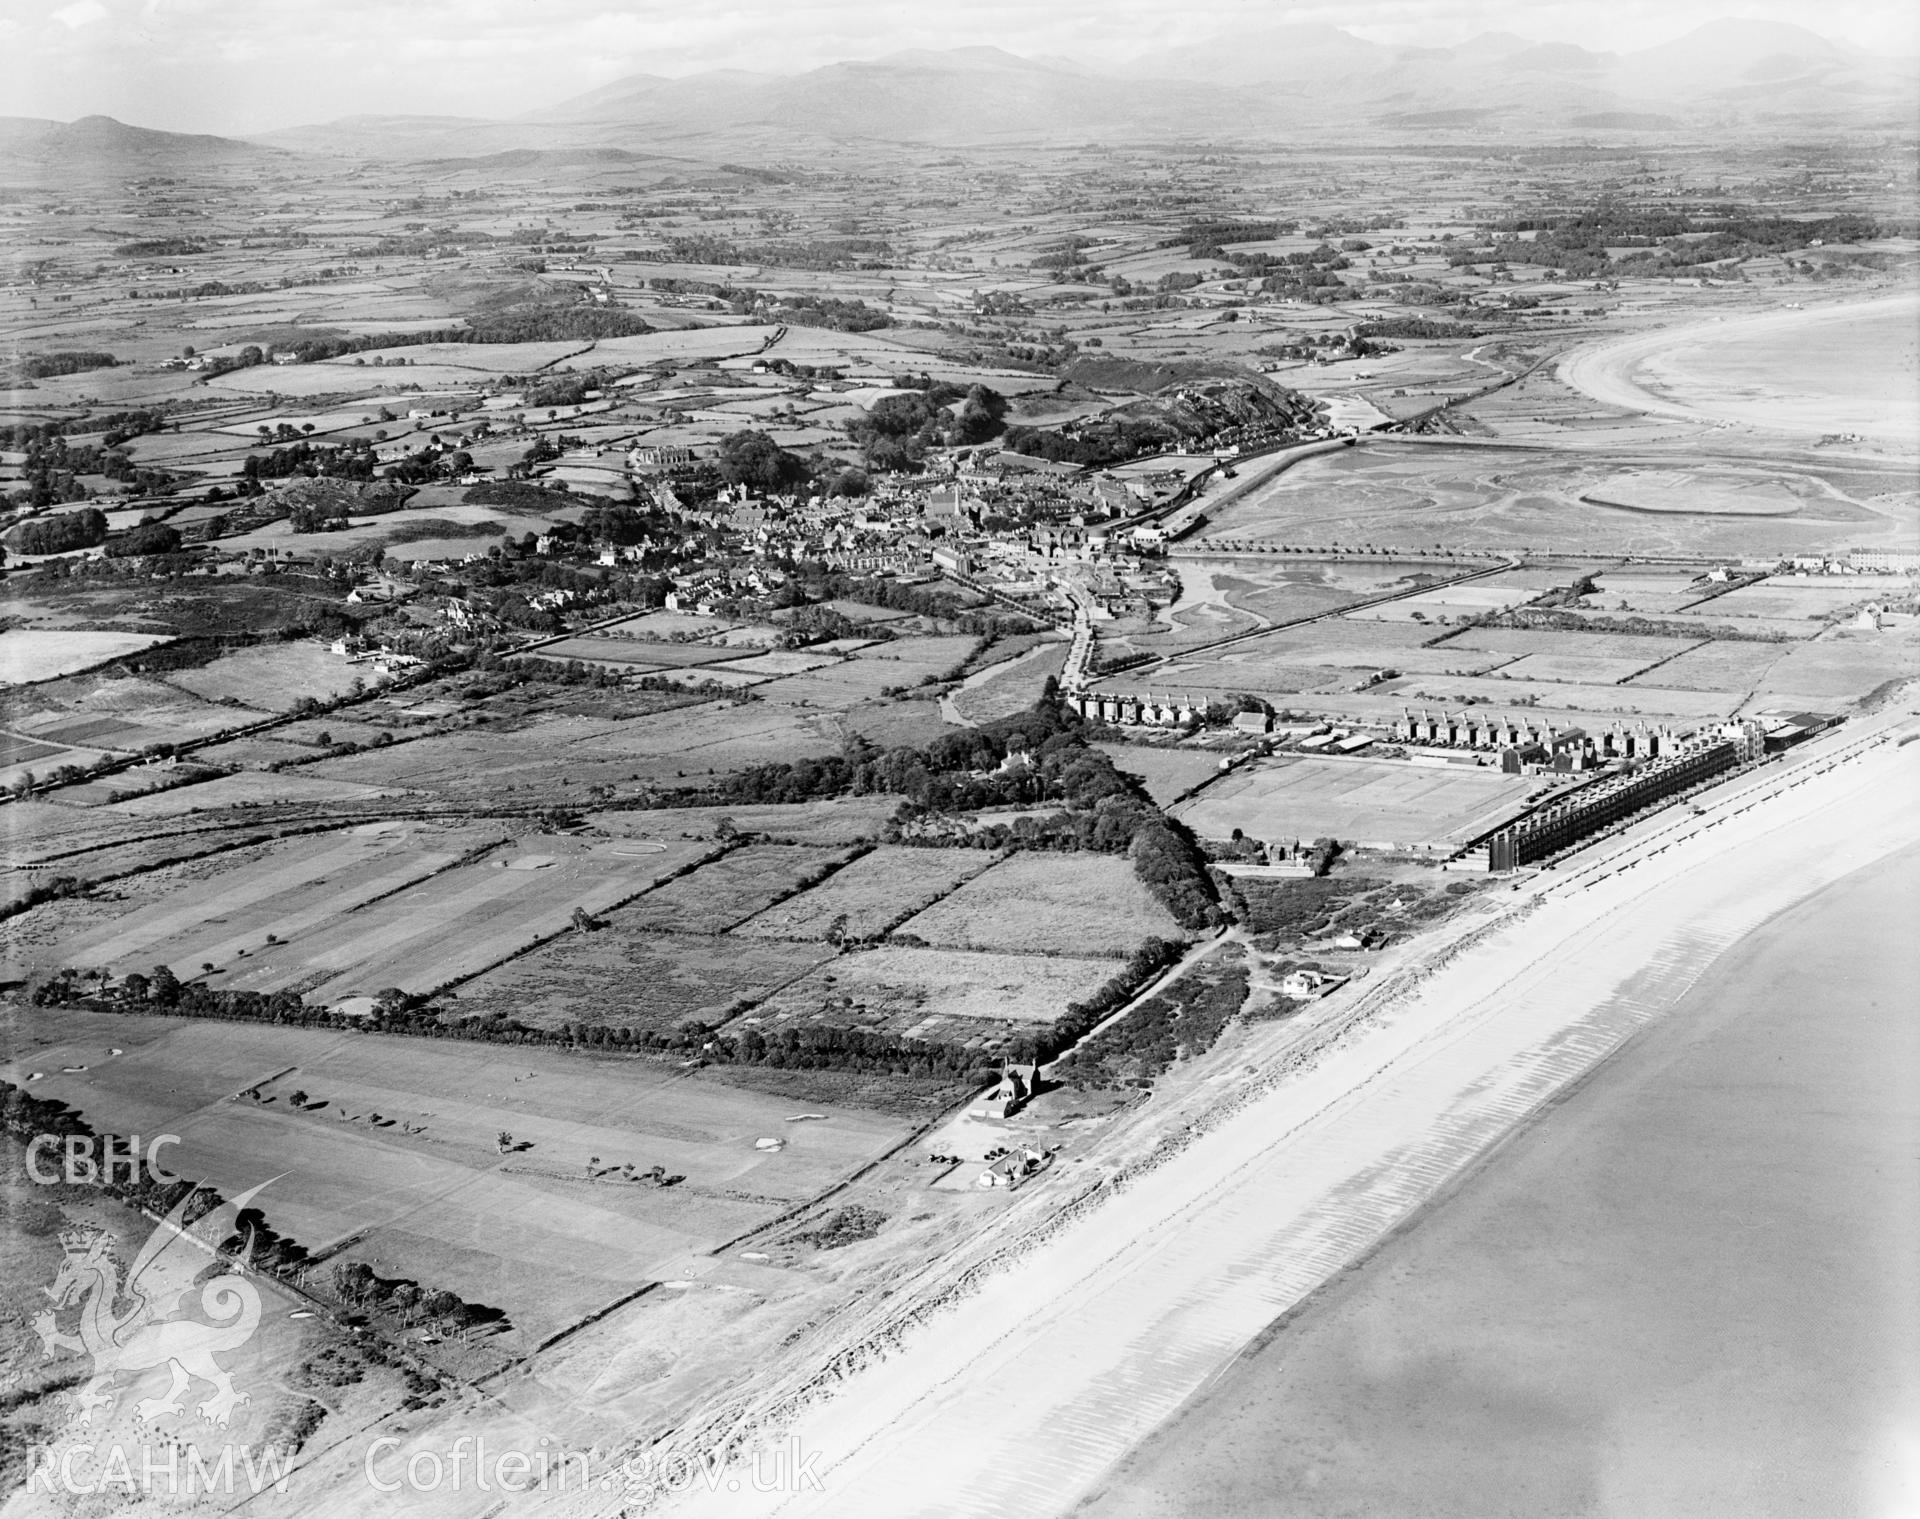 View of Pwllheli showing promenade, oblique aerial view. 5?x4? black and white glass plate negative.